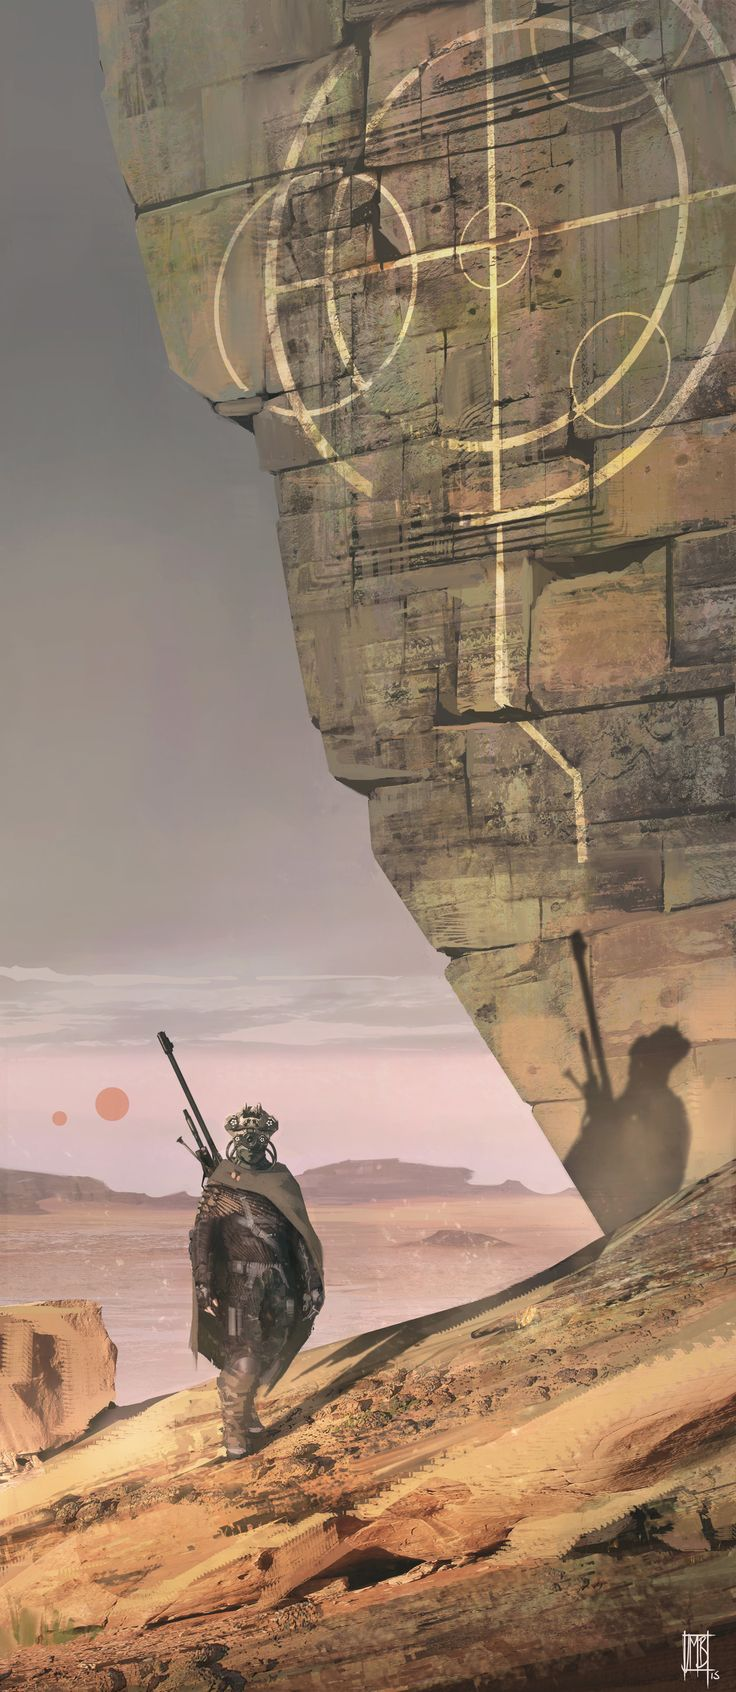 ArtStation - Vantage Point 2015, Jonathan M Betts